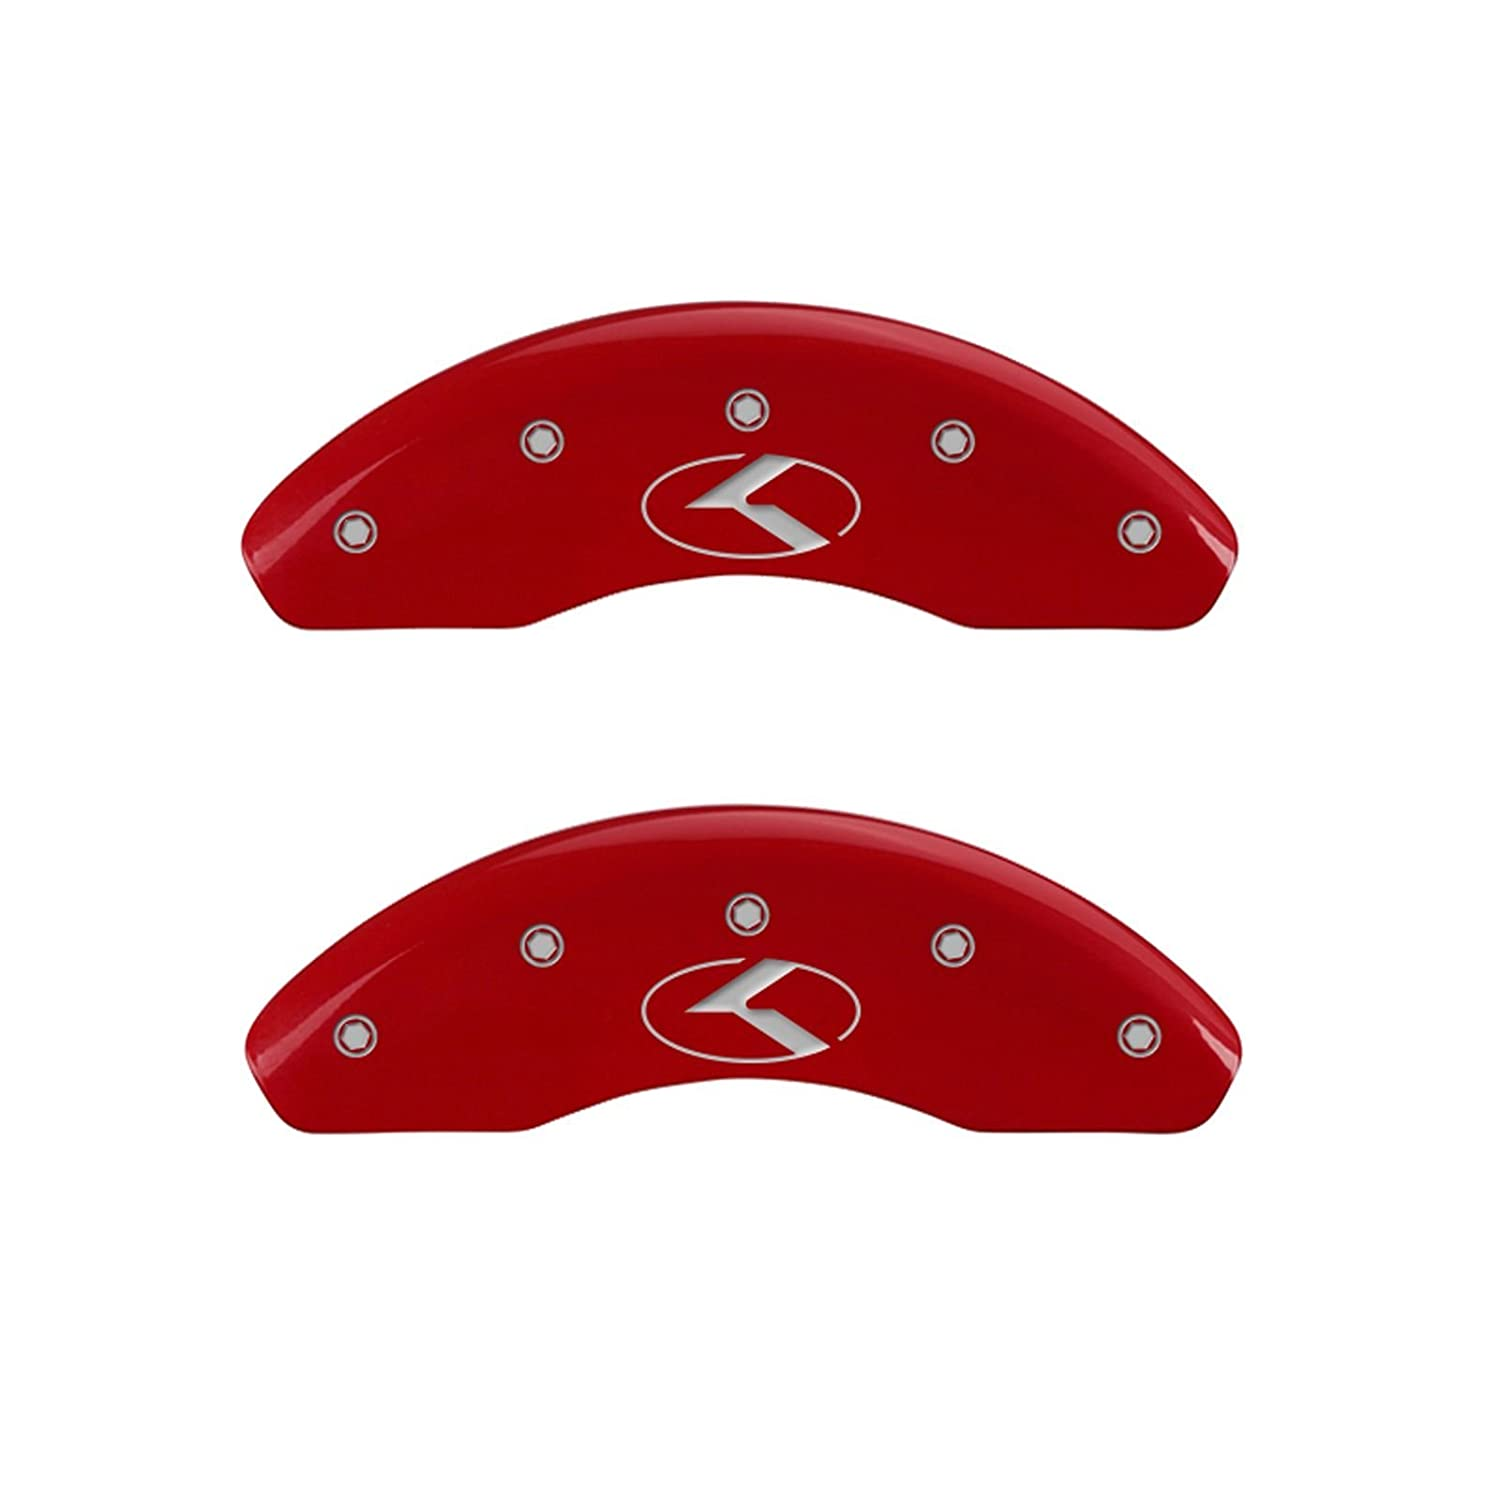 MGP Caliper Covers (21174SCRKRD) 'Circle K/Kia' Engraved Front and Rear Caliper Cover with Red Powder Coat Finish and Silver Characters, (Set of 4)